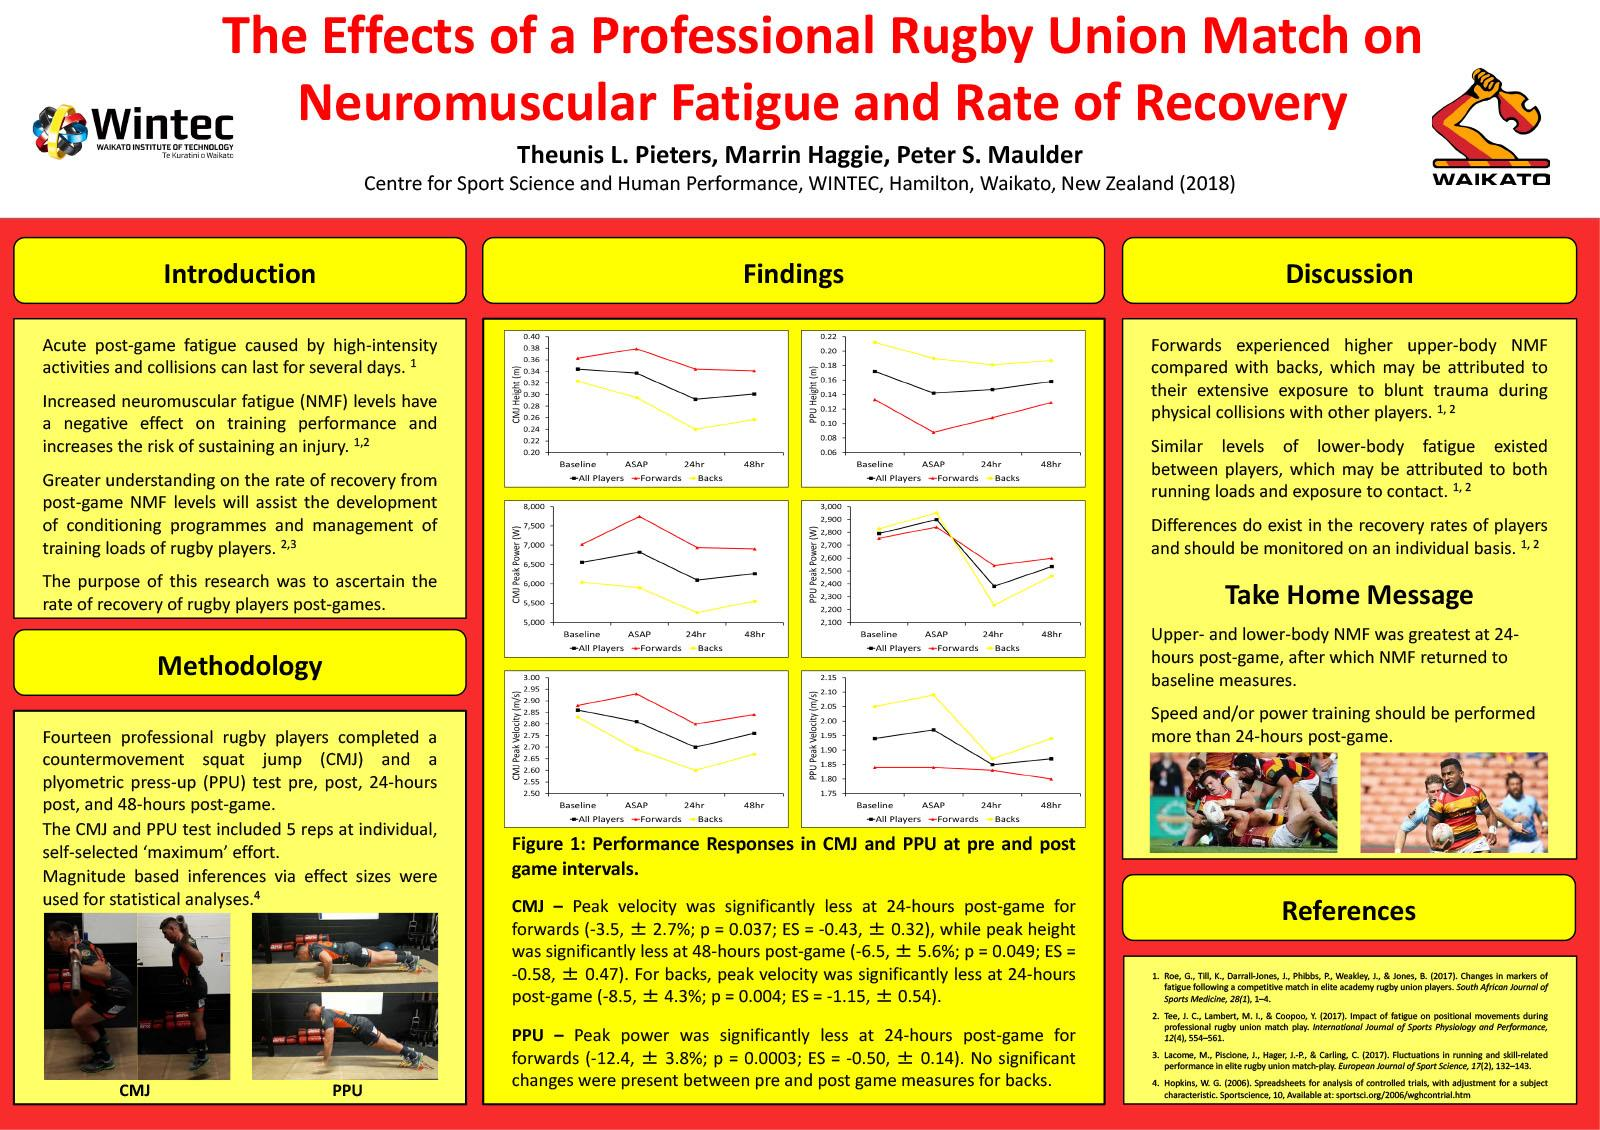 The Effects of a Professional Rugby Union Match on Neuromuscular Fatigue and Rate of Recovery